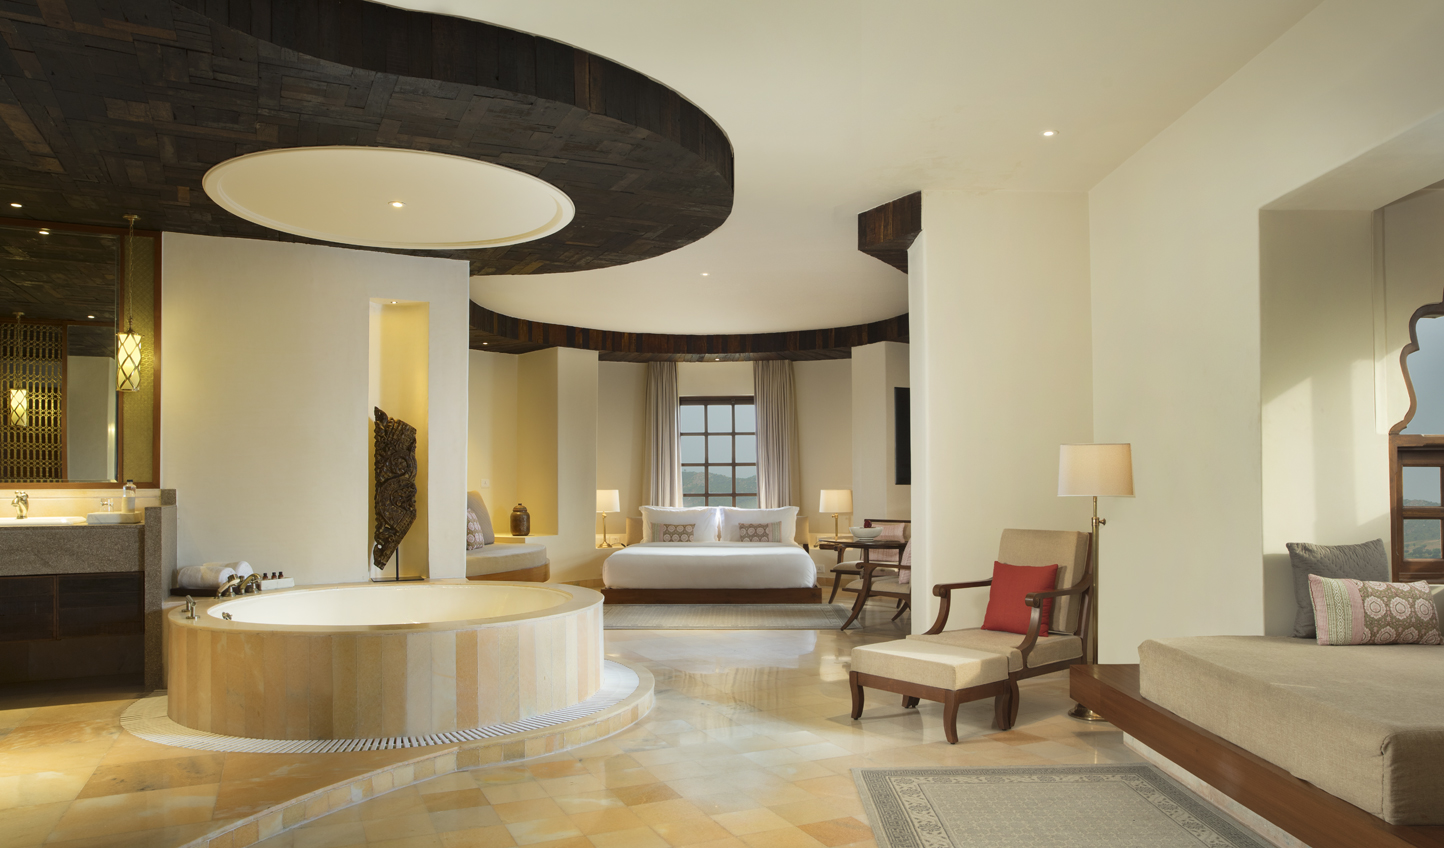 Sink into a bathtuob big enough for two in the Regal Suite